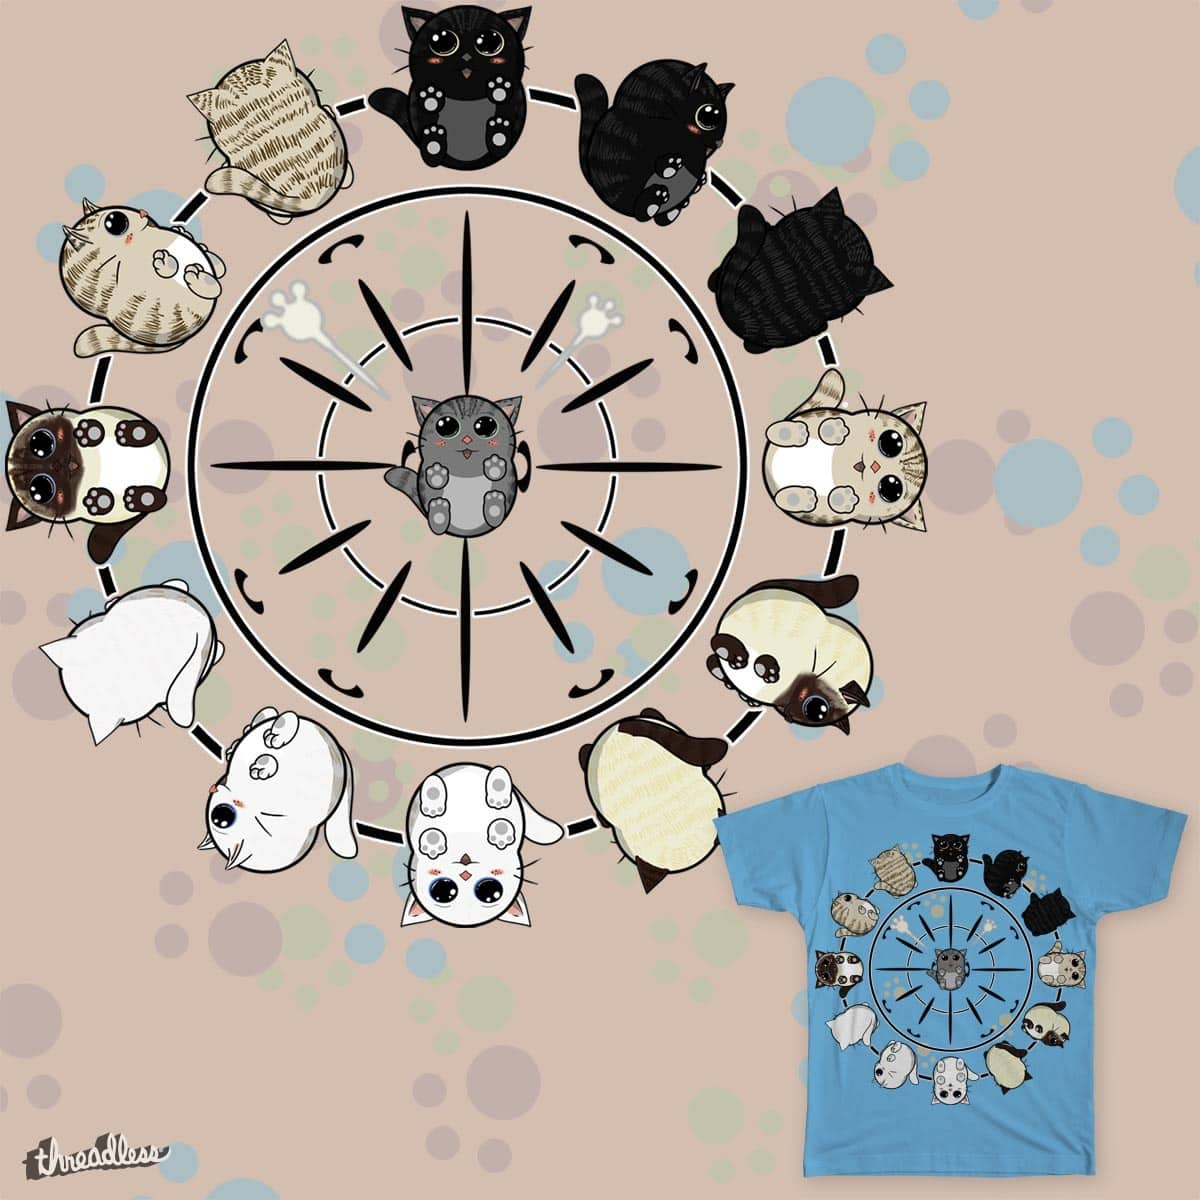 Kitty O'clock by OliverDemers on Threadless